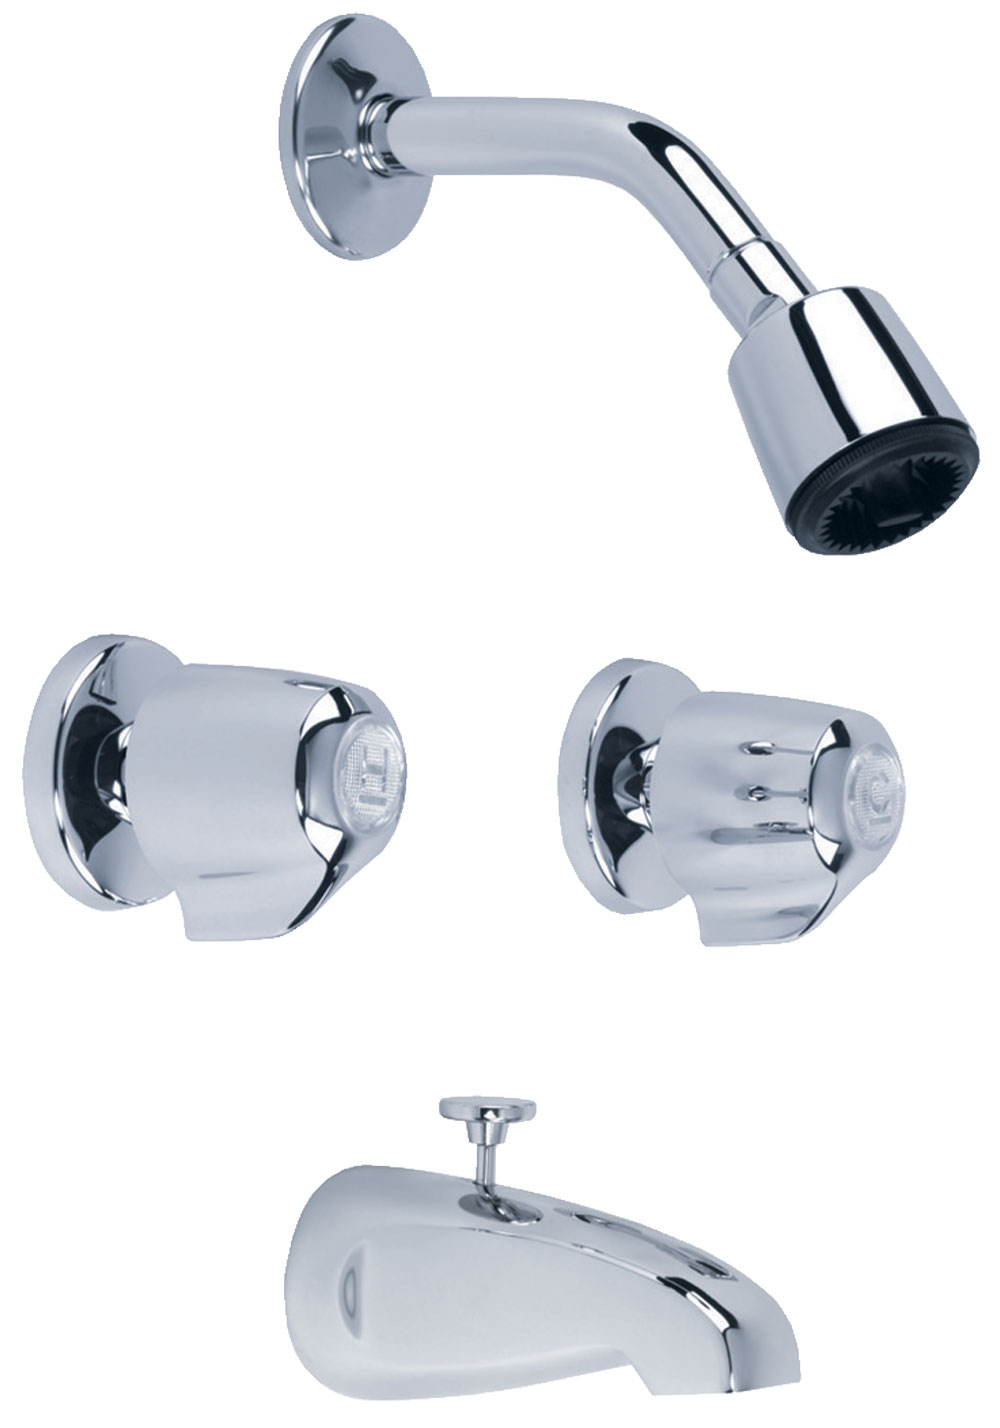 Gerber Classics 6 Inch Centers Two Handle Tub Shower